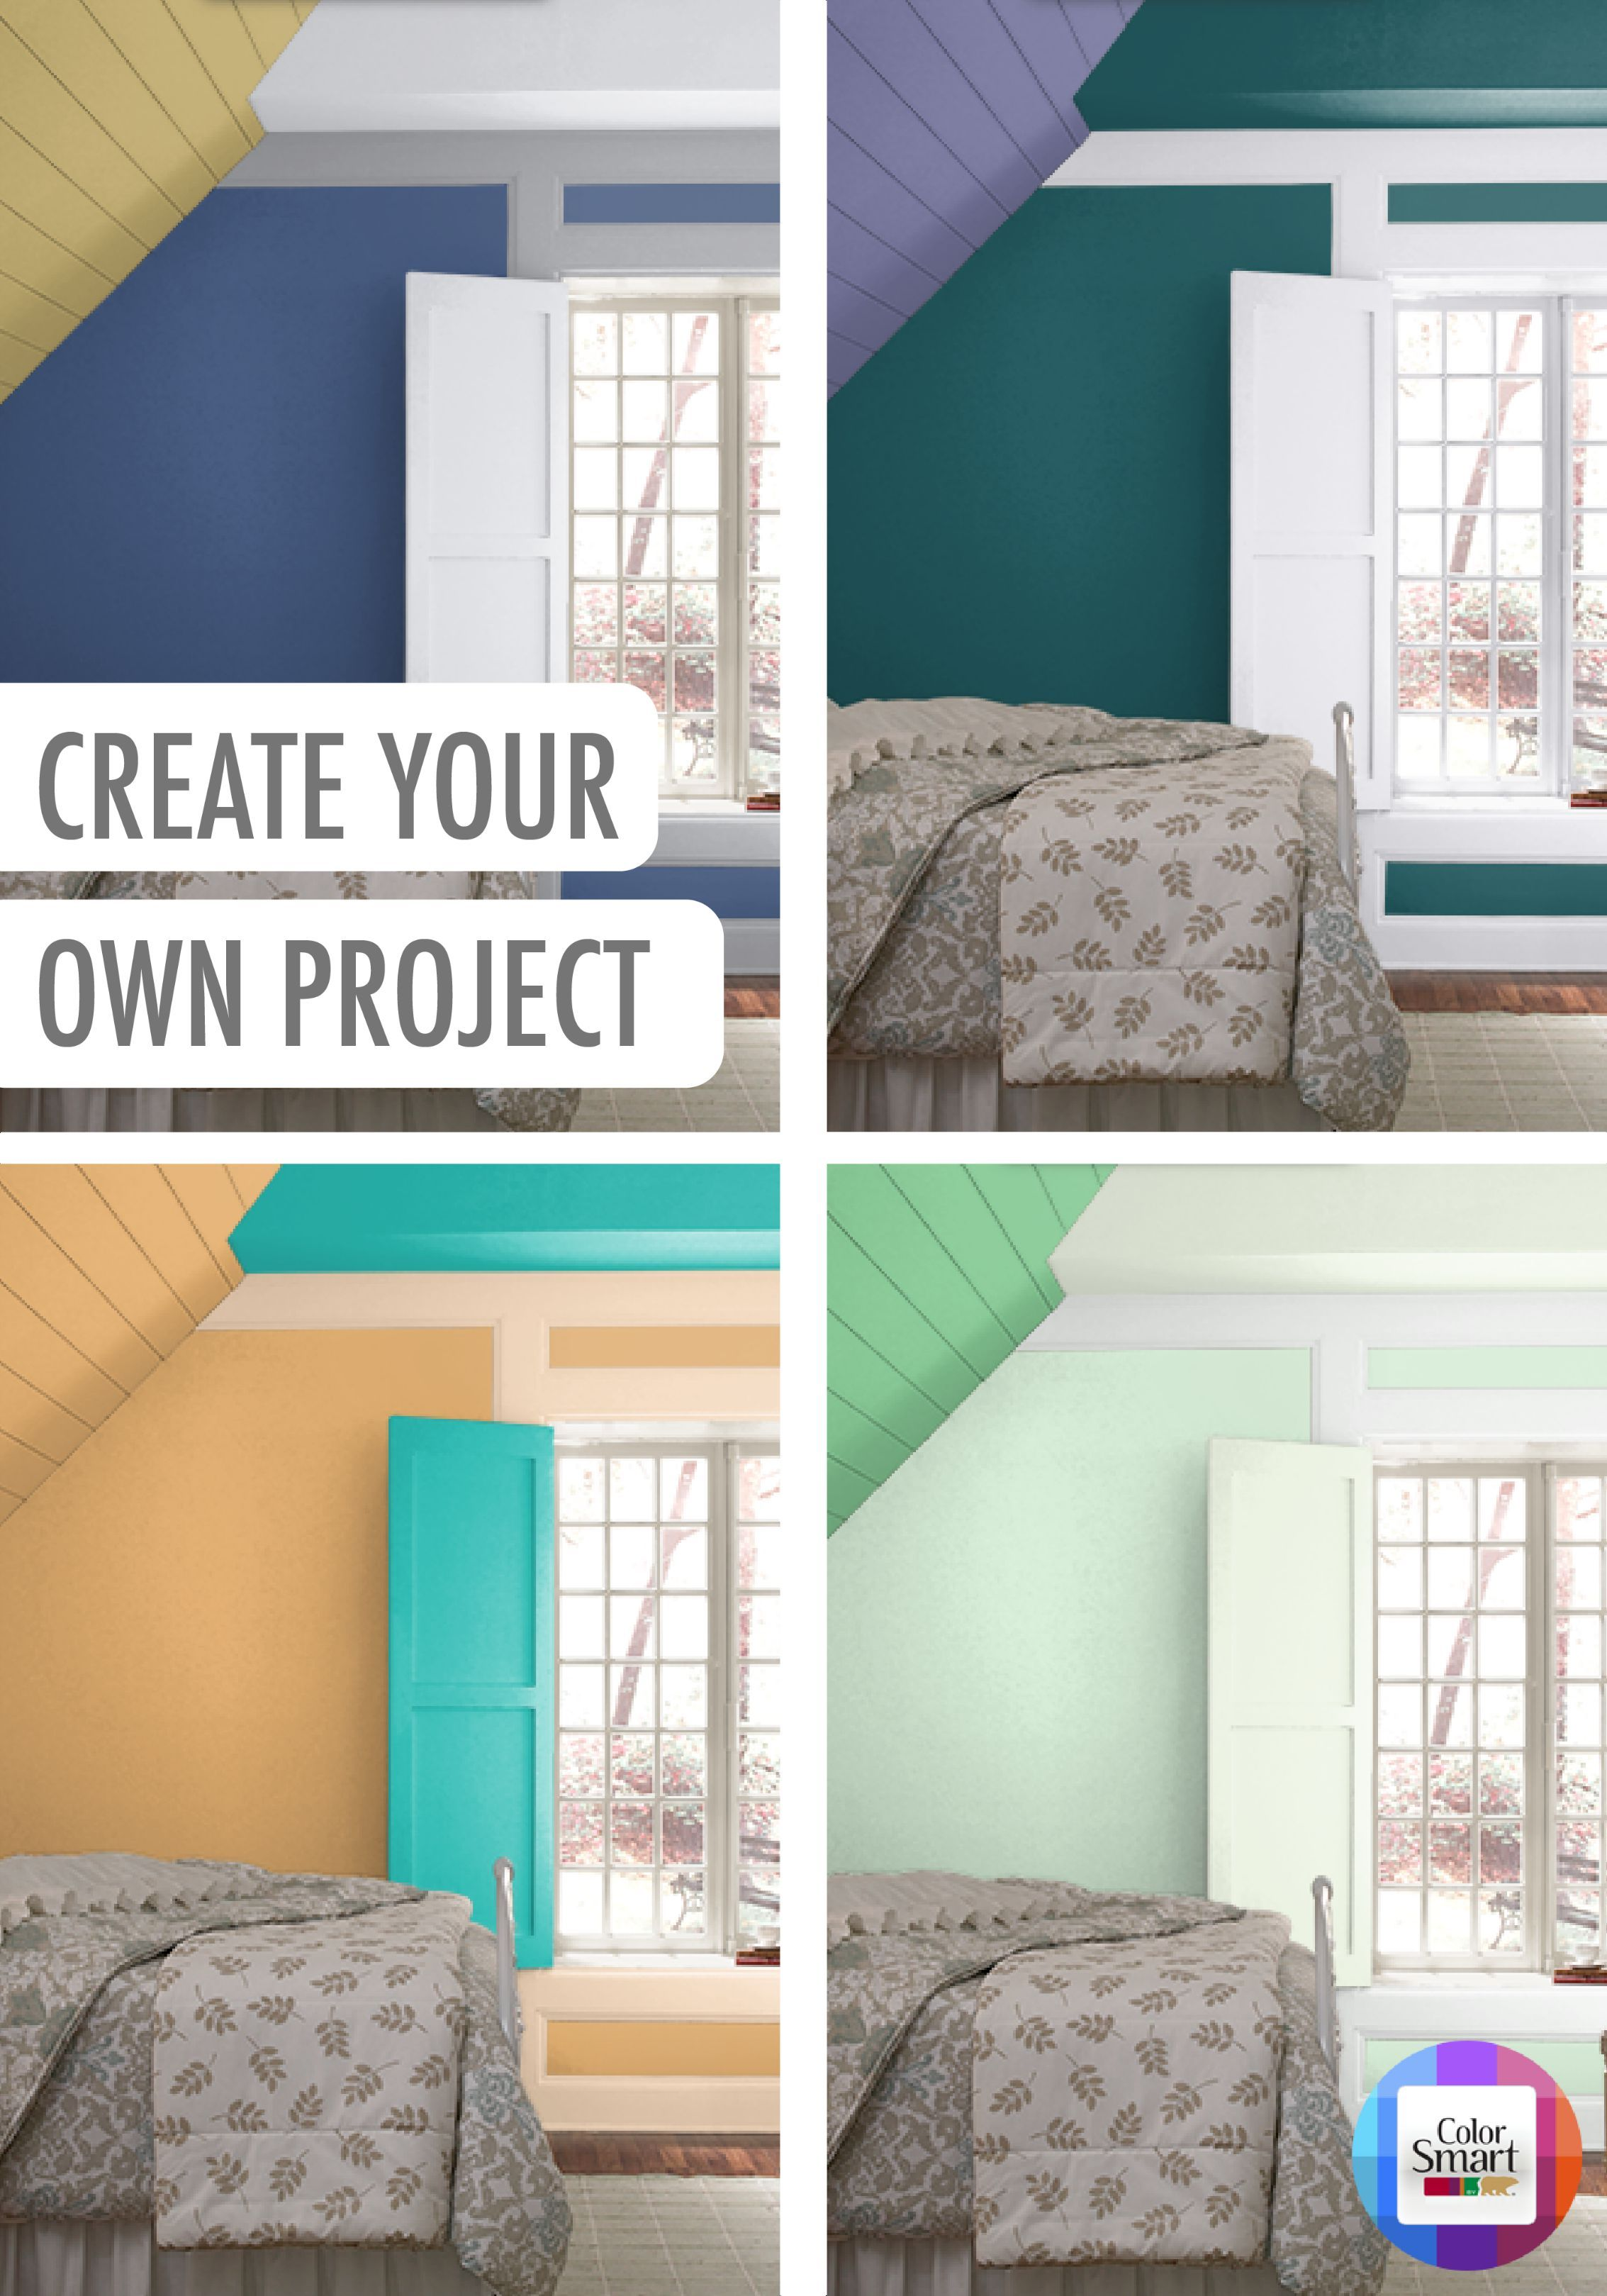 Customize your own bedroom  kitchen  living room  or entryway with  suggested BEHR paint. Customize your own bedroom  kitchen  living room  or entryway with